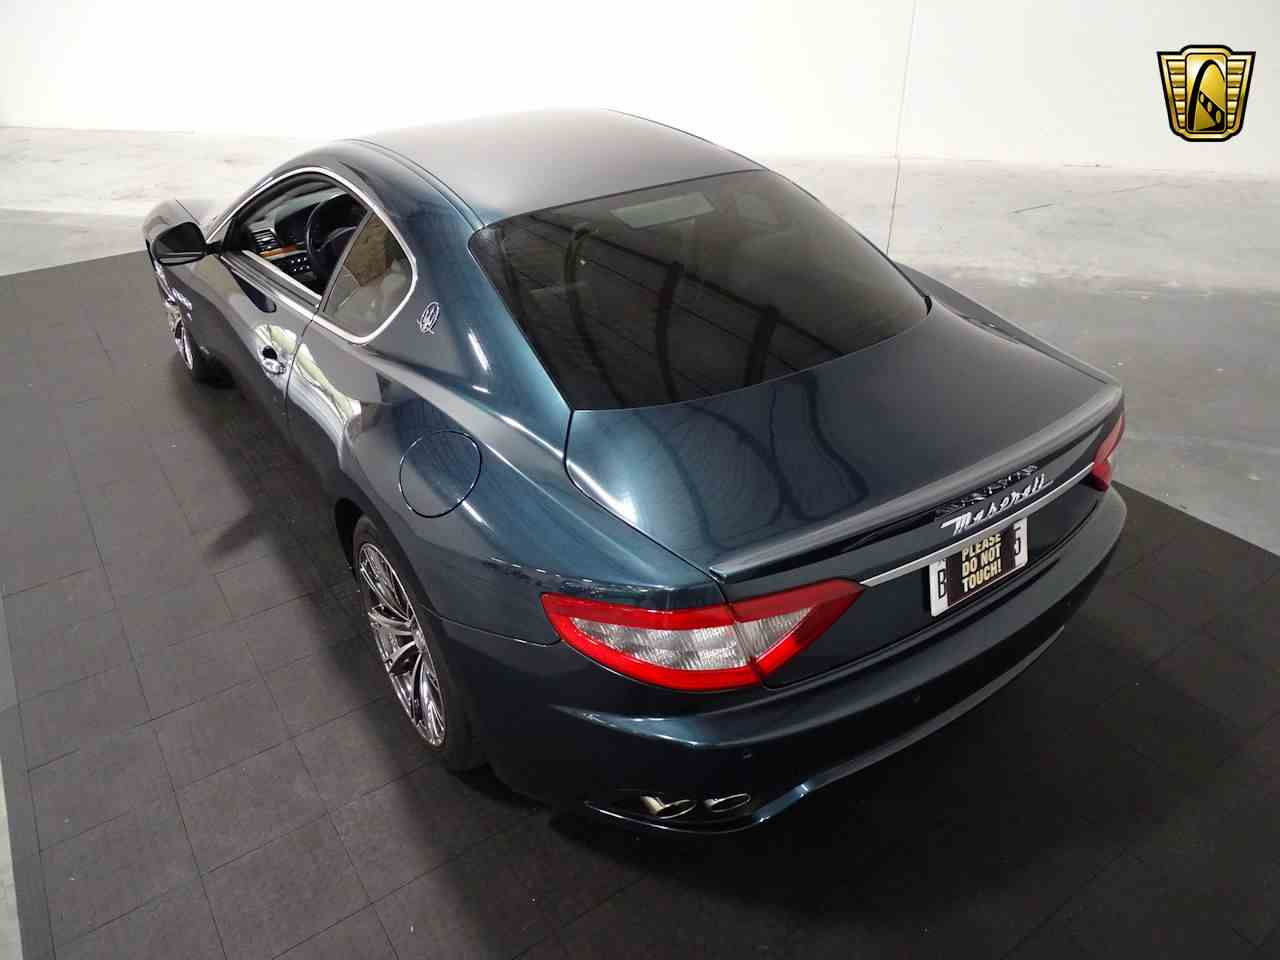 Large Picture of 2008 Maserati GranTurismo located in Houston Texas - $42,995.00 Offered by Gateway Classic Cars - Houston - MO4H